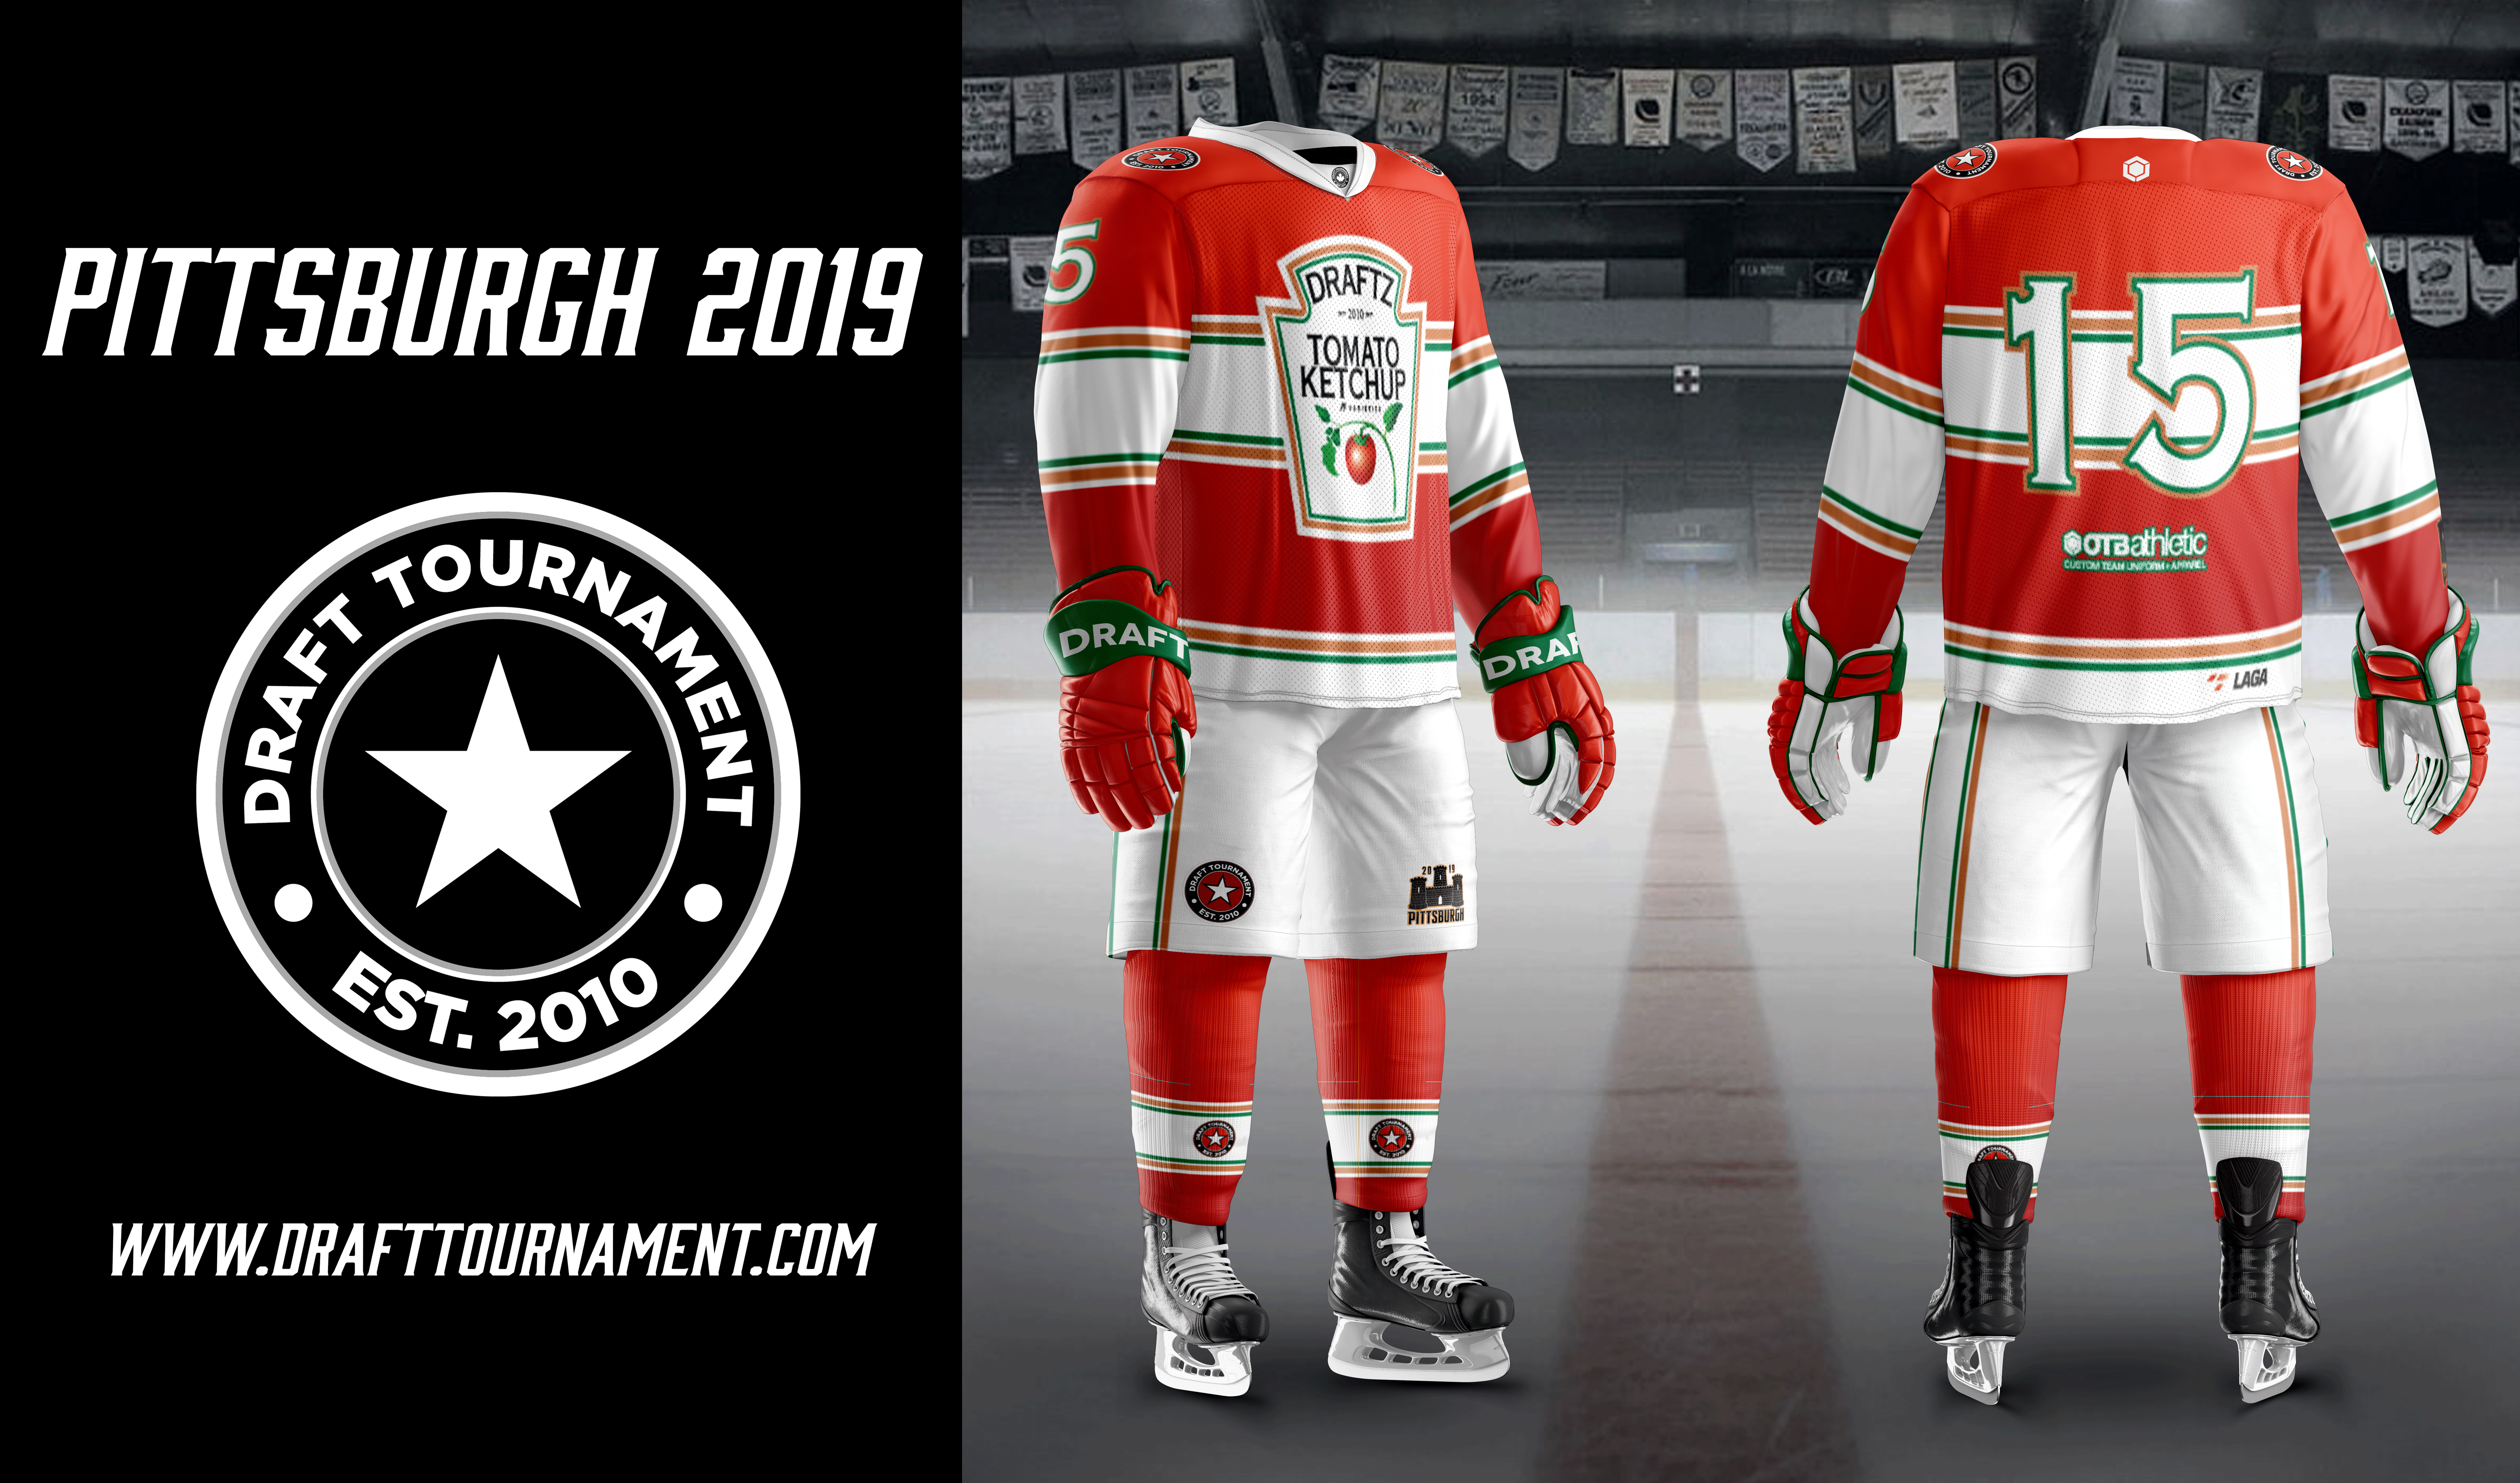 competitive price 188c0 7c0dd Third Pittsburgh Jersey Revealed! | DraftTournament.com